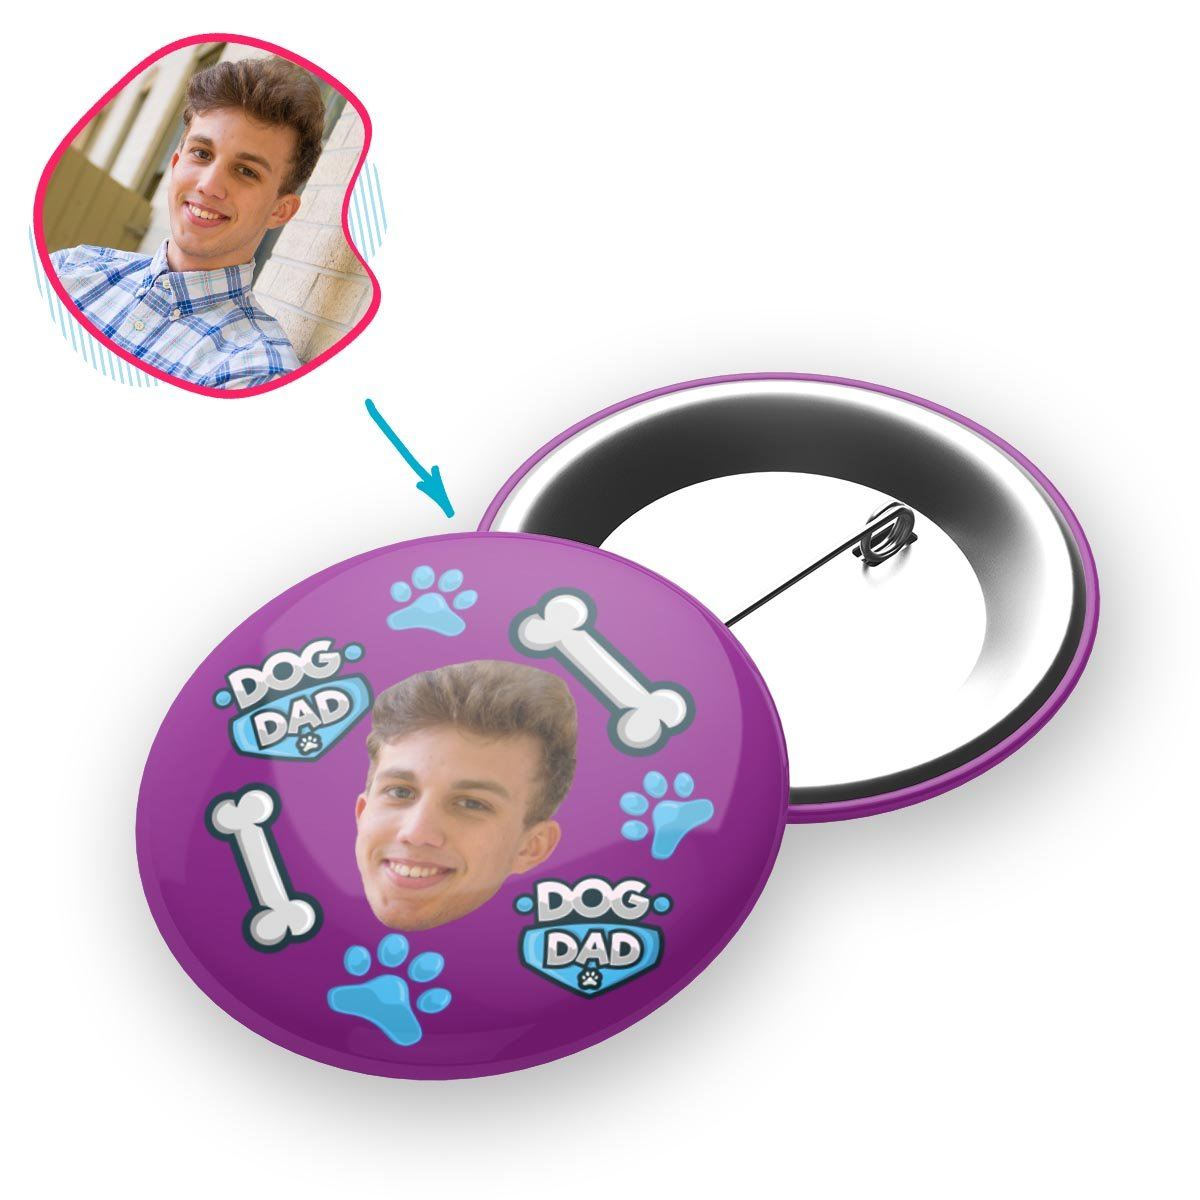 purple Dog Dad pin personalized with photo of face printed on it